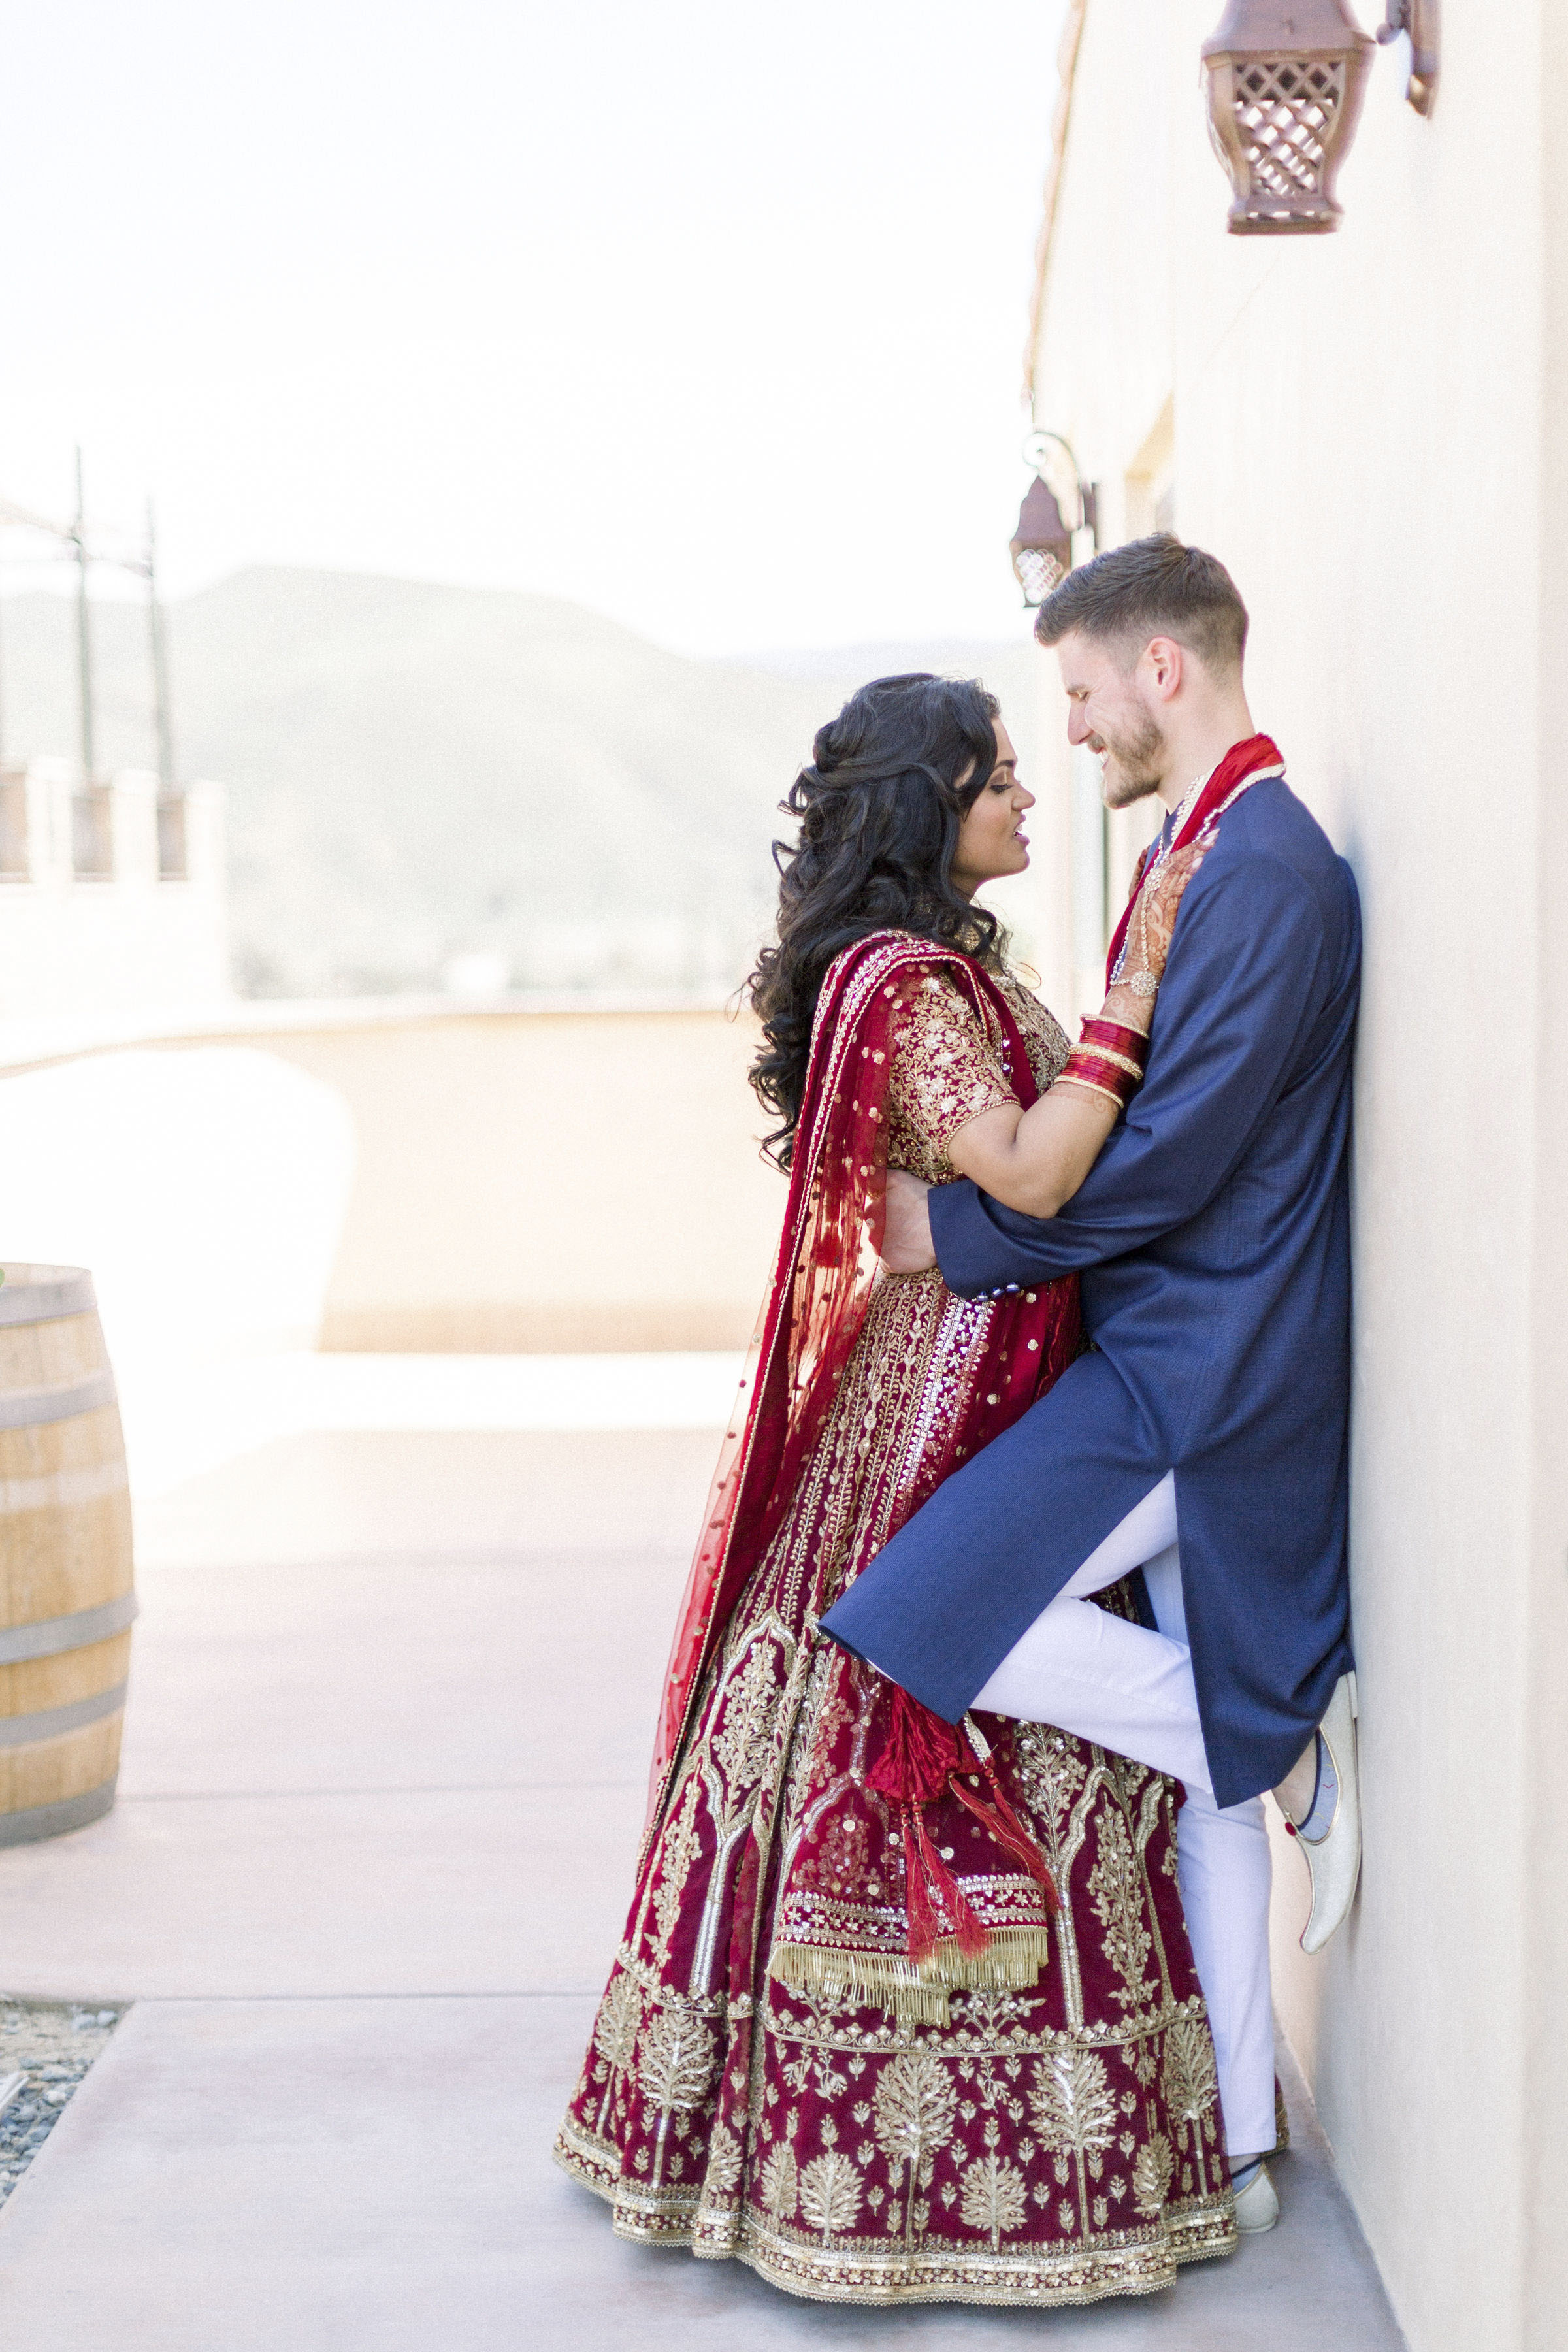 Domenica Beauty _ Hair and Makeup Artist _Wedding _ Temecula, CA _ Pratishtha and Christopher _ 15.JPG